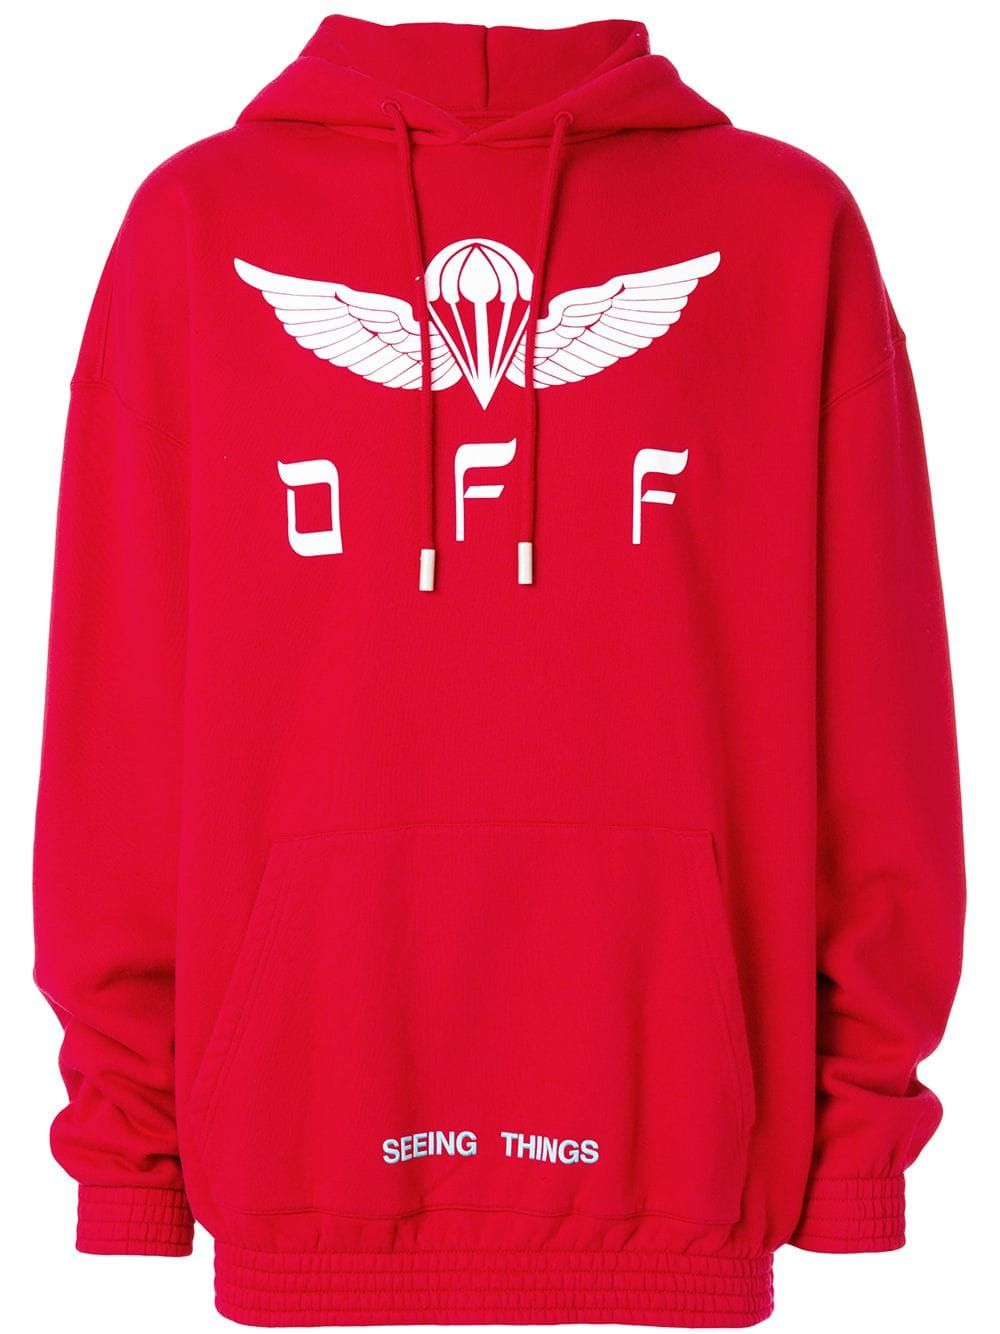 Off White Off White Seeing Things Hoodie Red Off White Cloth